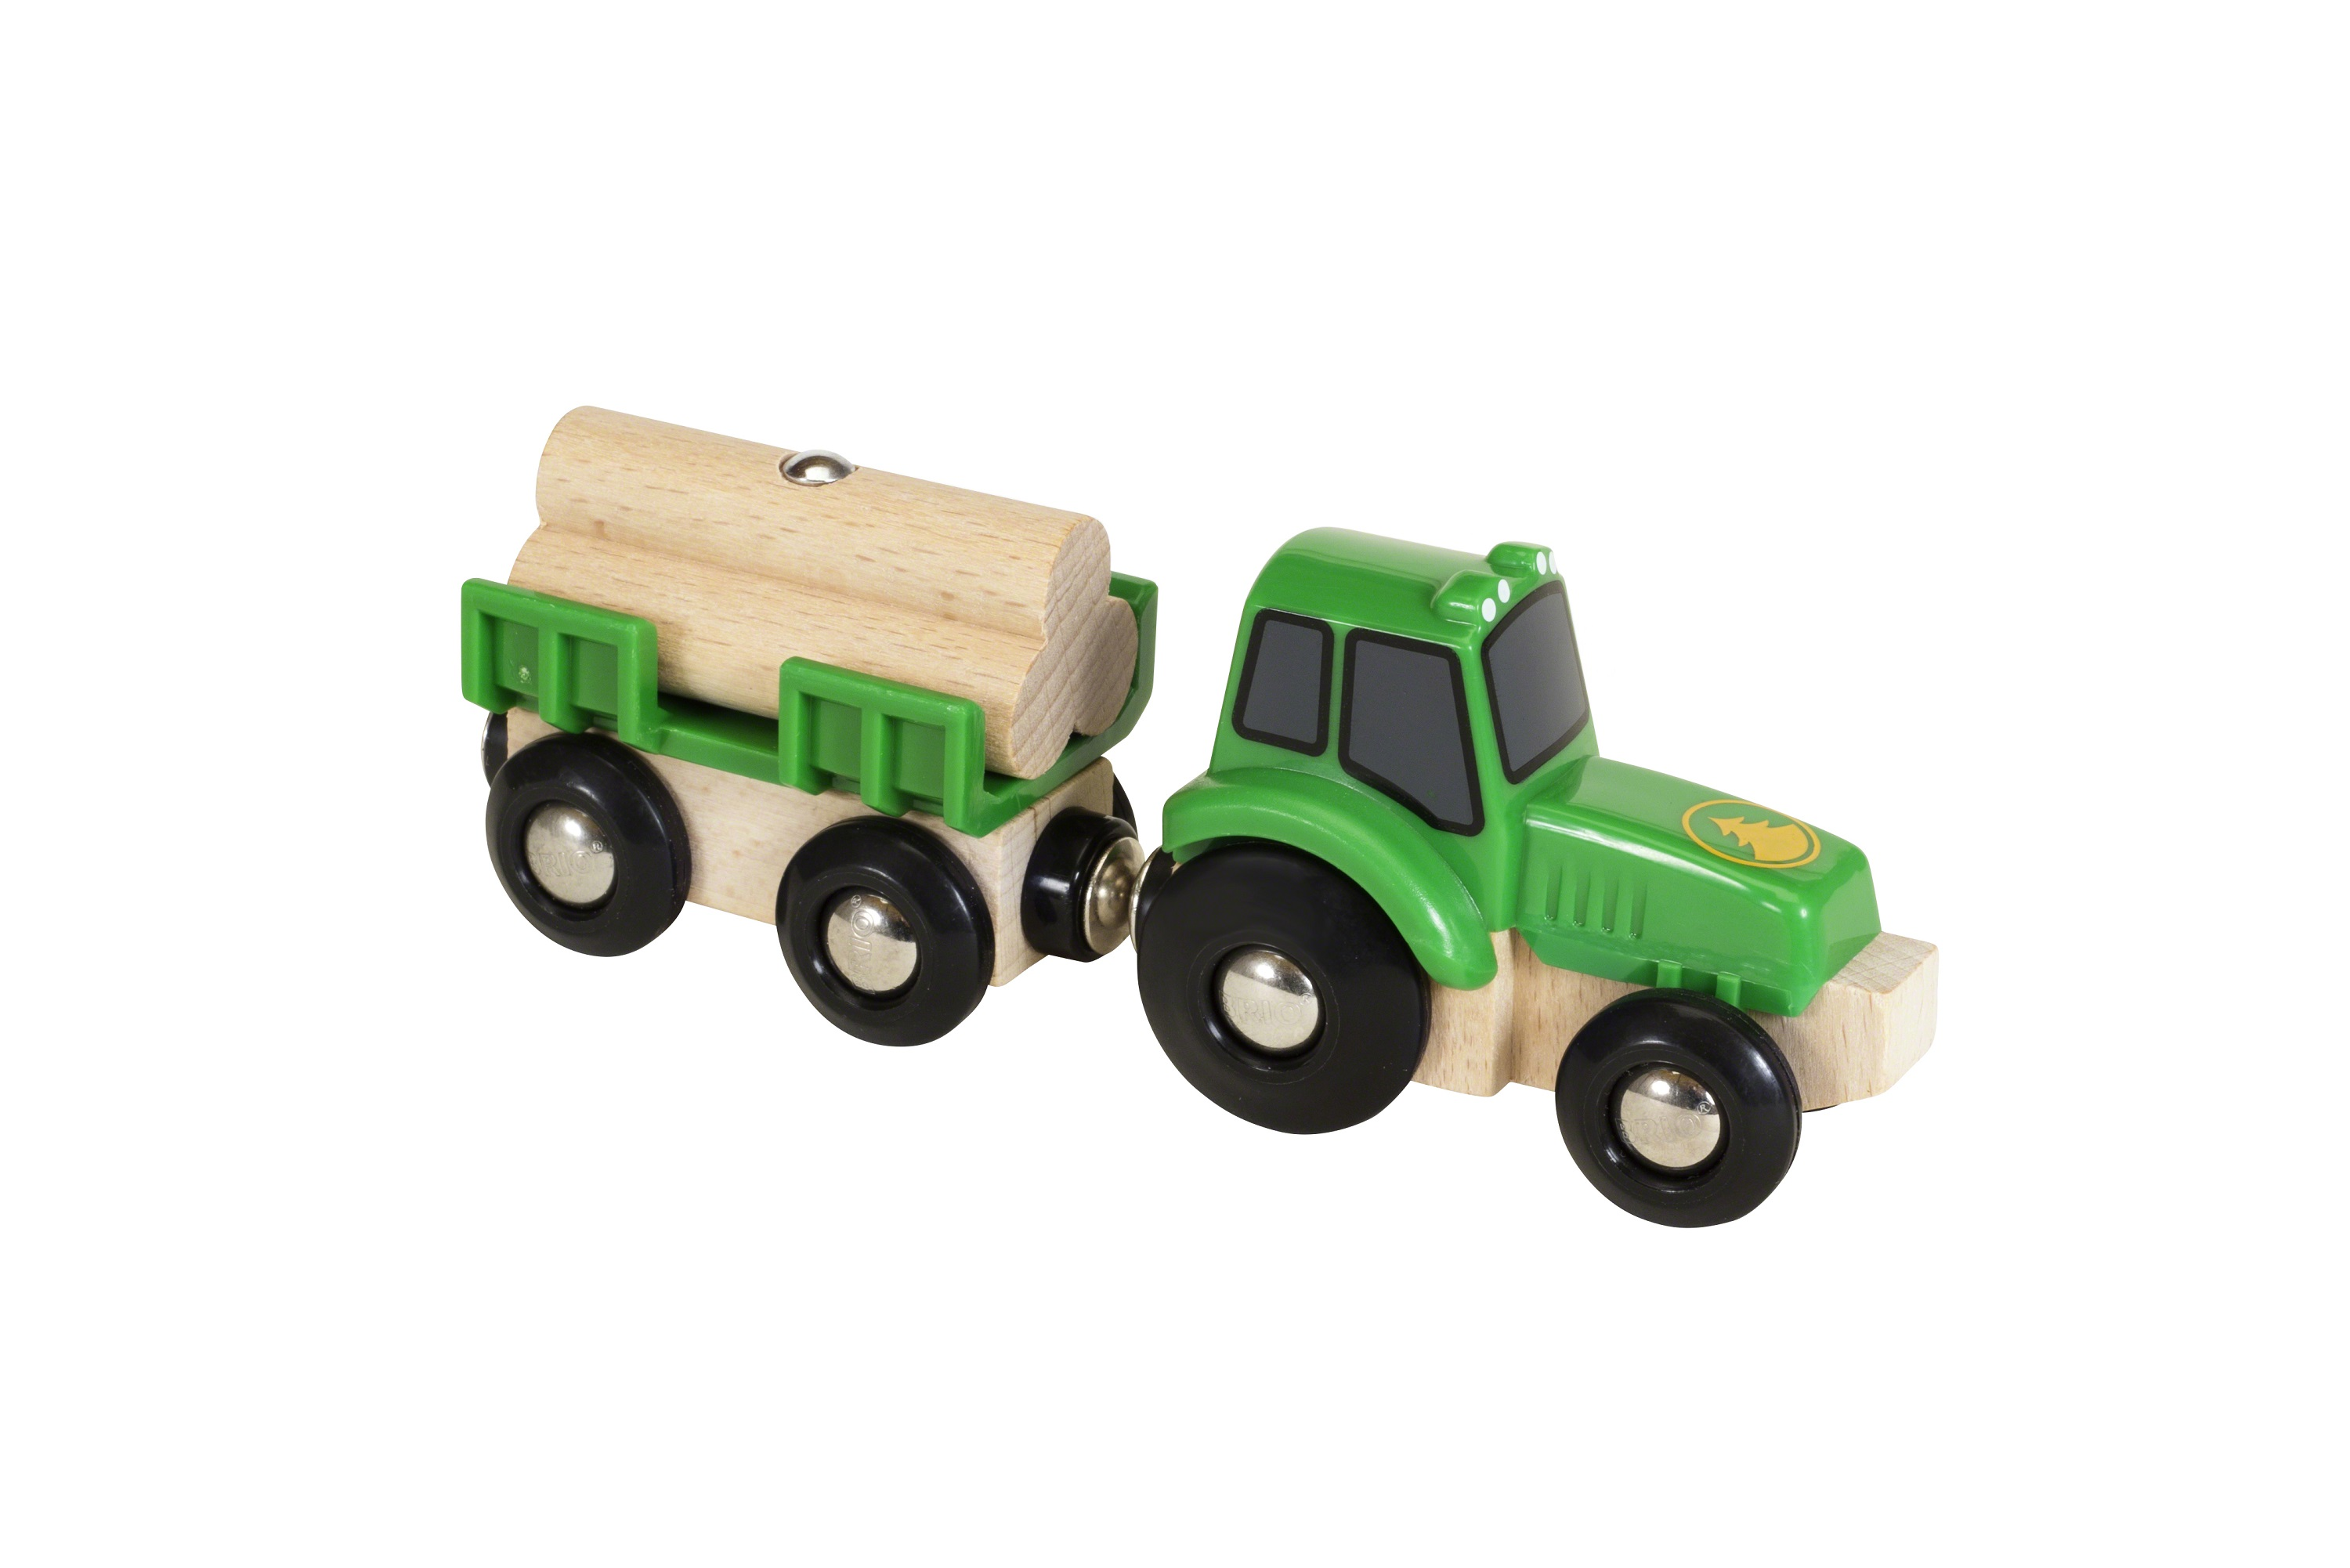 brio traktor mit holz anh nger im brio online shop. Black Bedroom Furniture Sets. Home Design Ideas